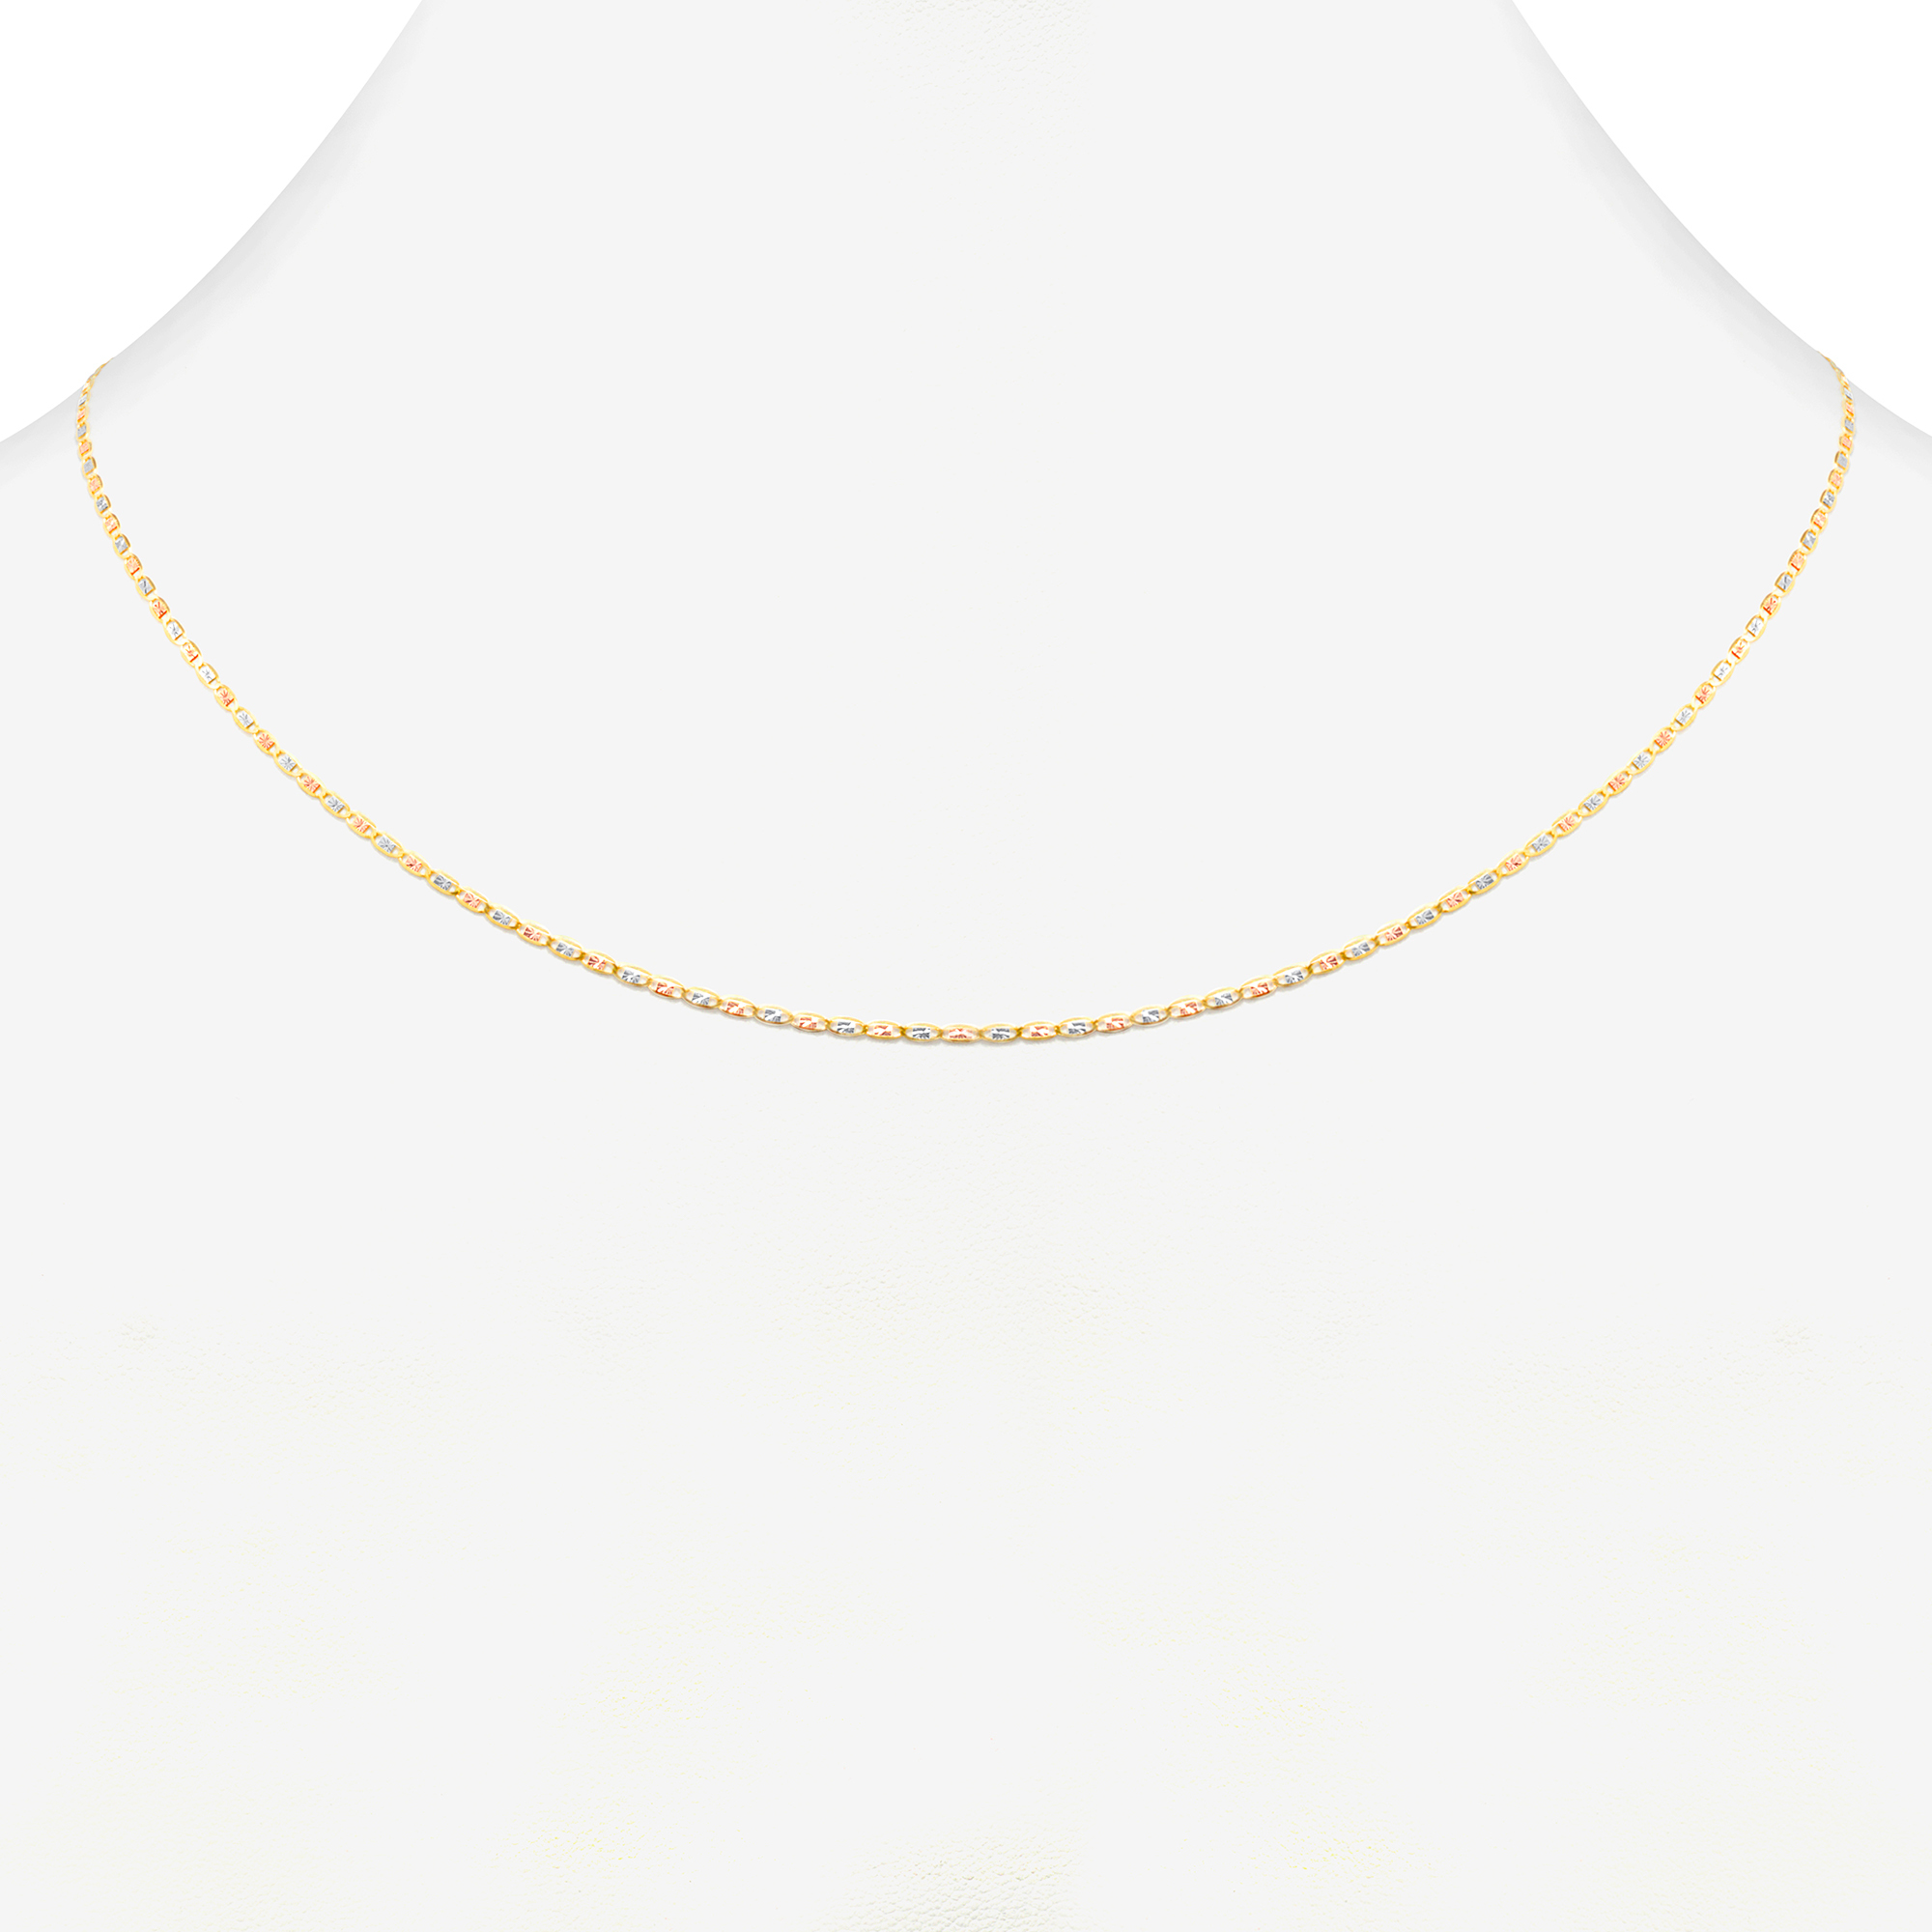 10K-Solid-Tri-Yellow-Rose-White-Gold-Thin-1-5mm-Valentino-Chain-Necklace-16-034-24-034 thumbnail 21